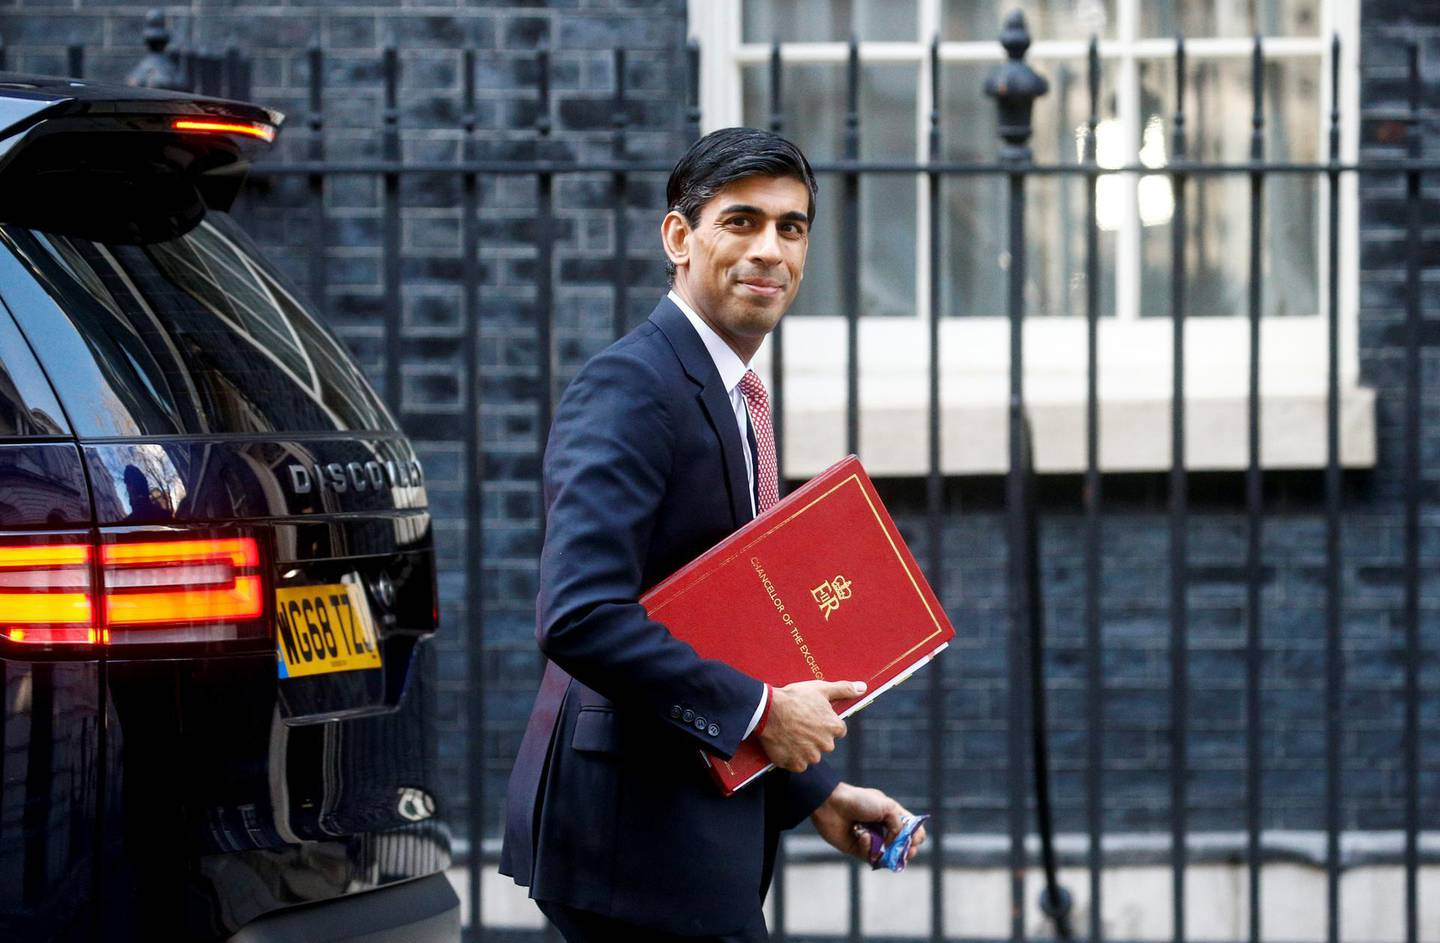 Britain's Chancellor of the Exchequer Rishi Sunak walks at Downing Street in London, Britain March 16, 2020. REUTERS/Henry Nicholls